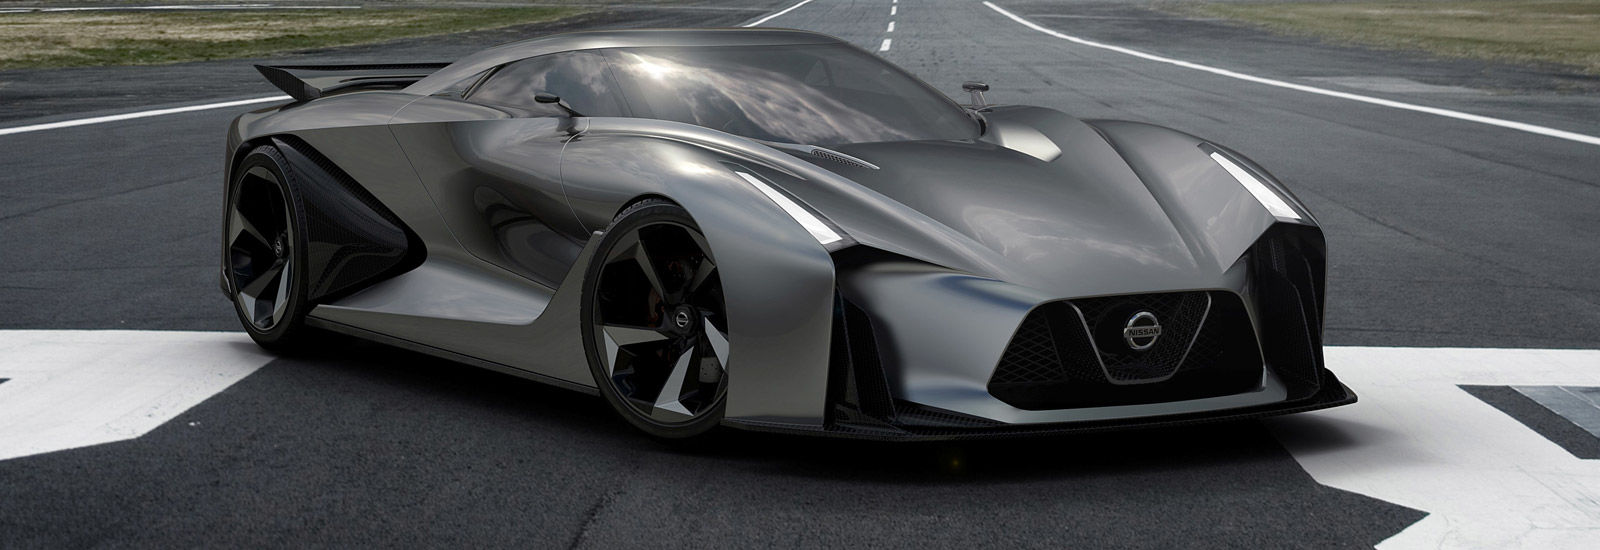 2018 nissan gtr concept.  concept the new gtru0027s styling will be inspired by the vision gran turismo concept  shown here inside 2018 nissan gtr concept